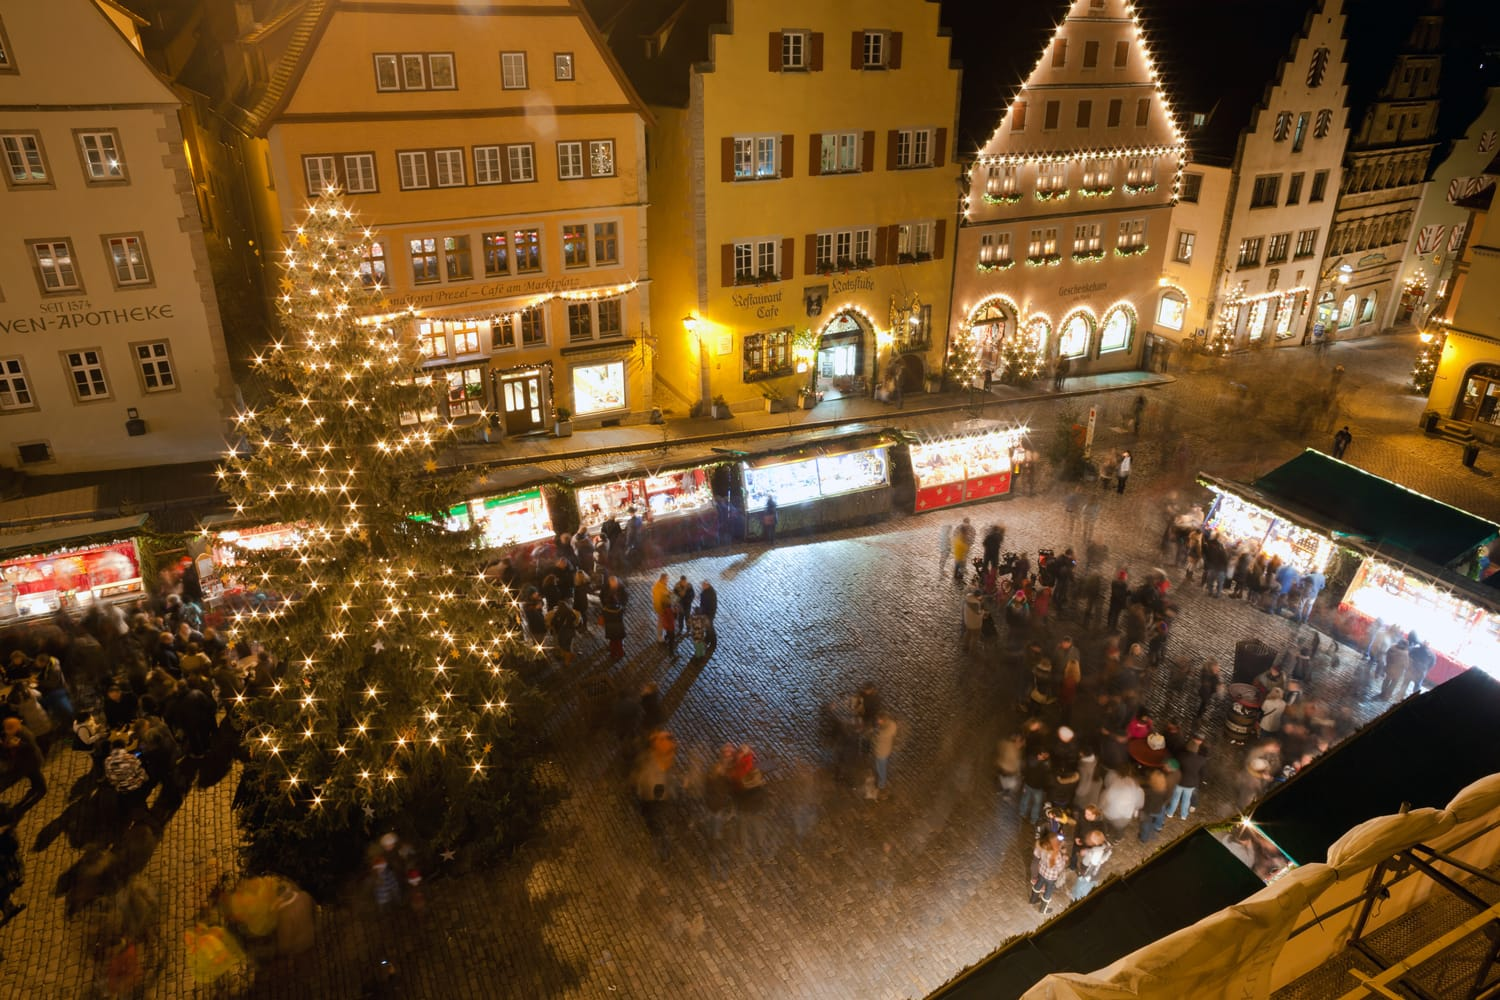 Christmas Markets in central square by night in Rothenburg ob der Tauber, Germany